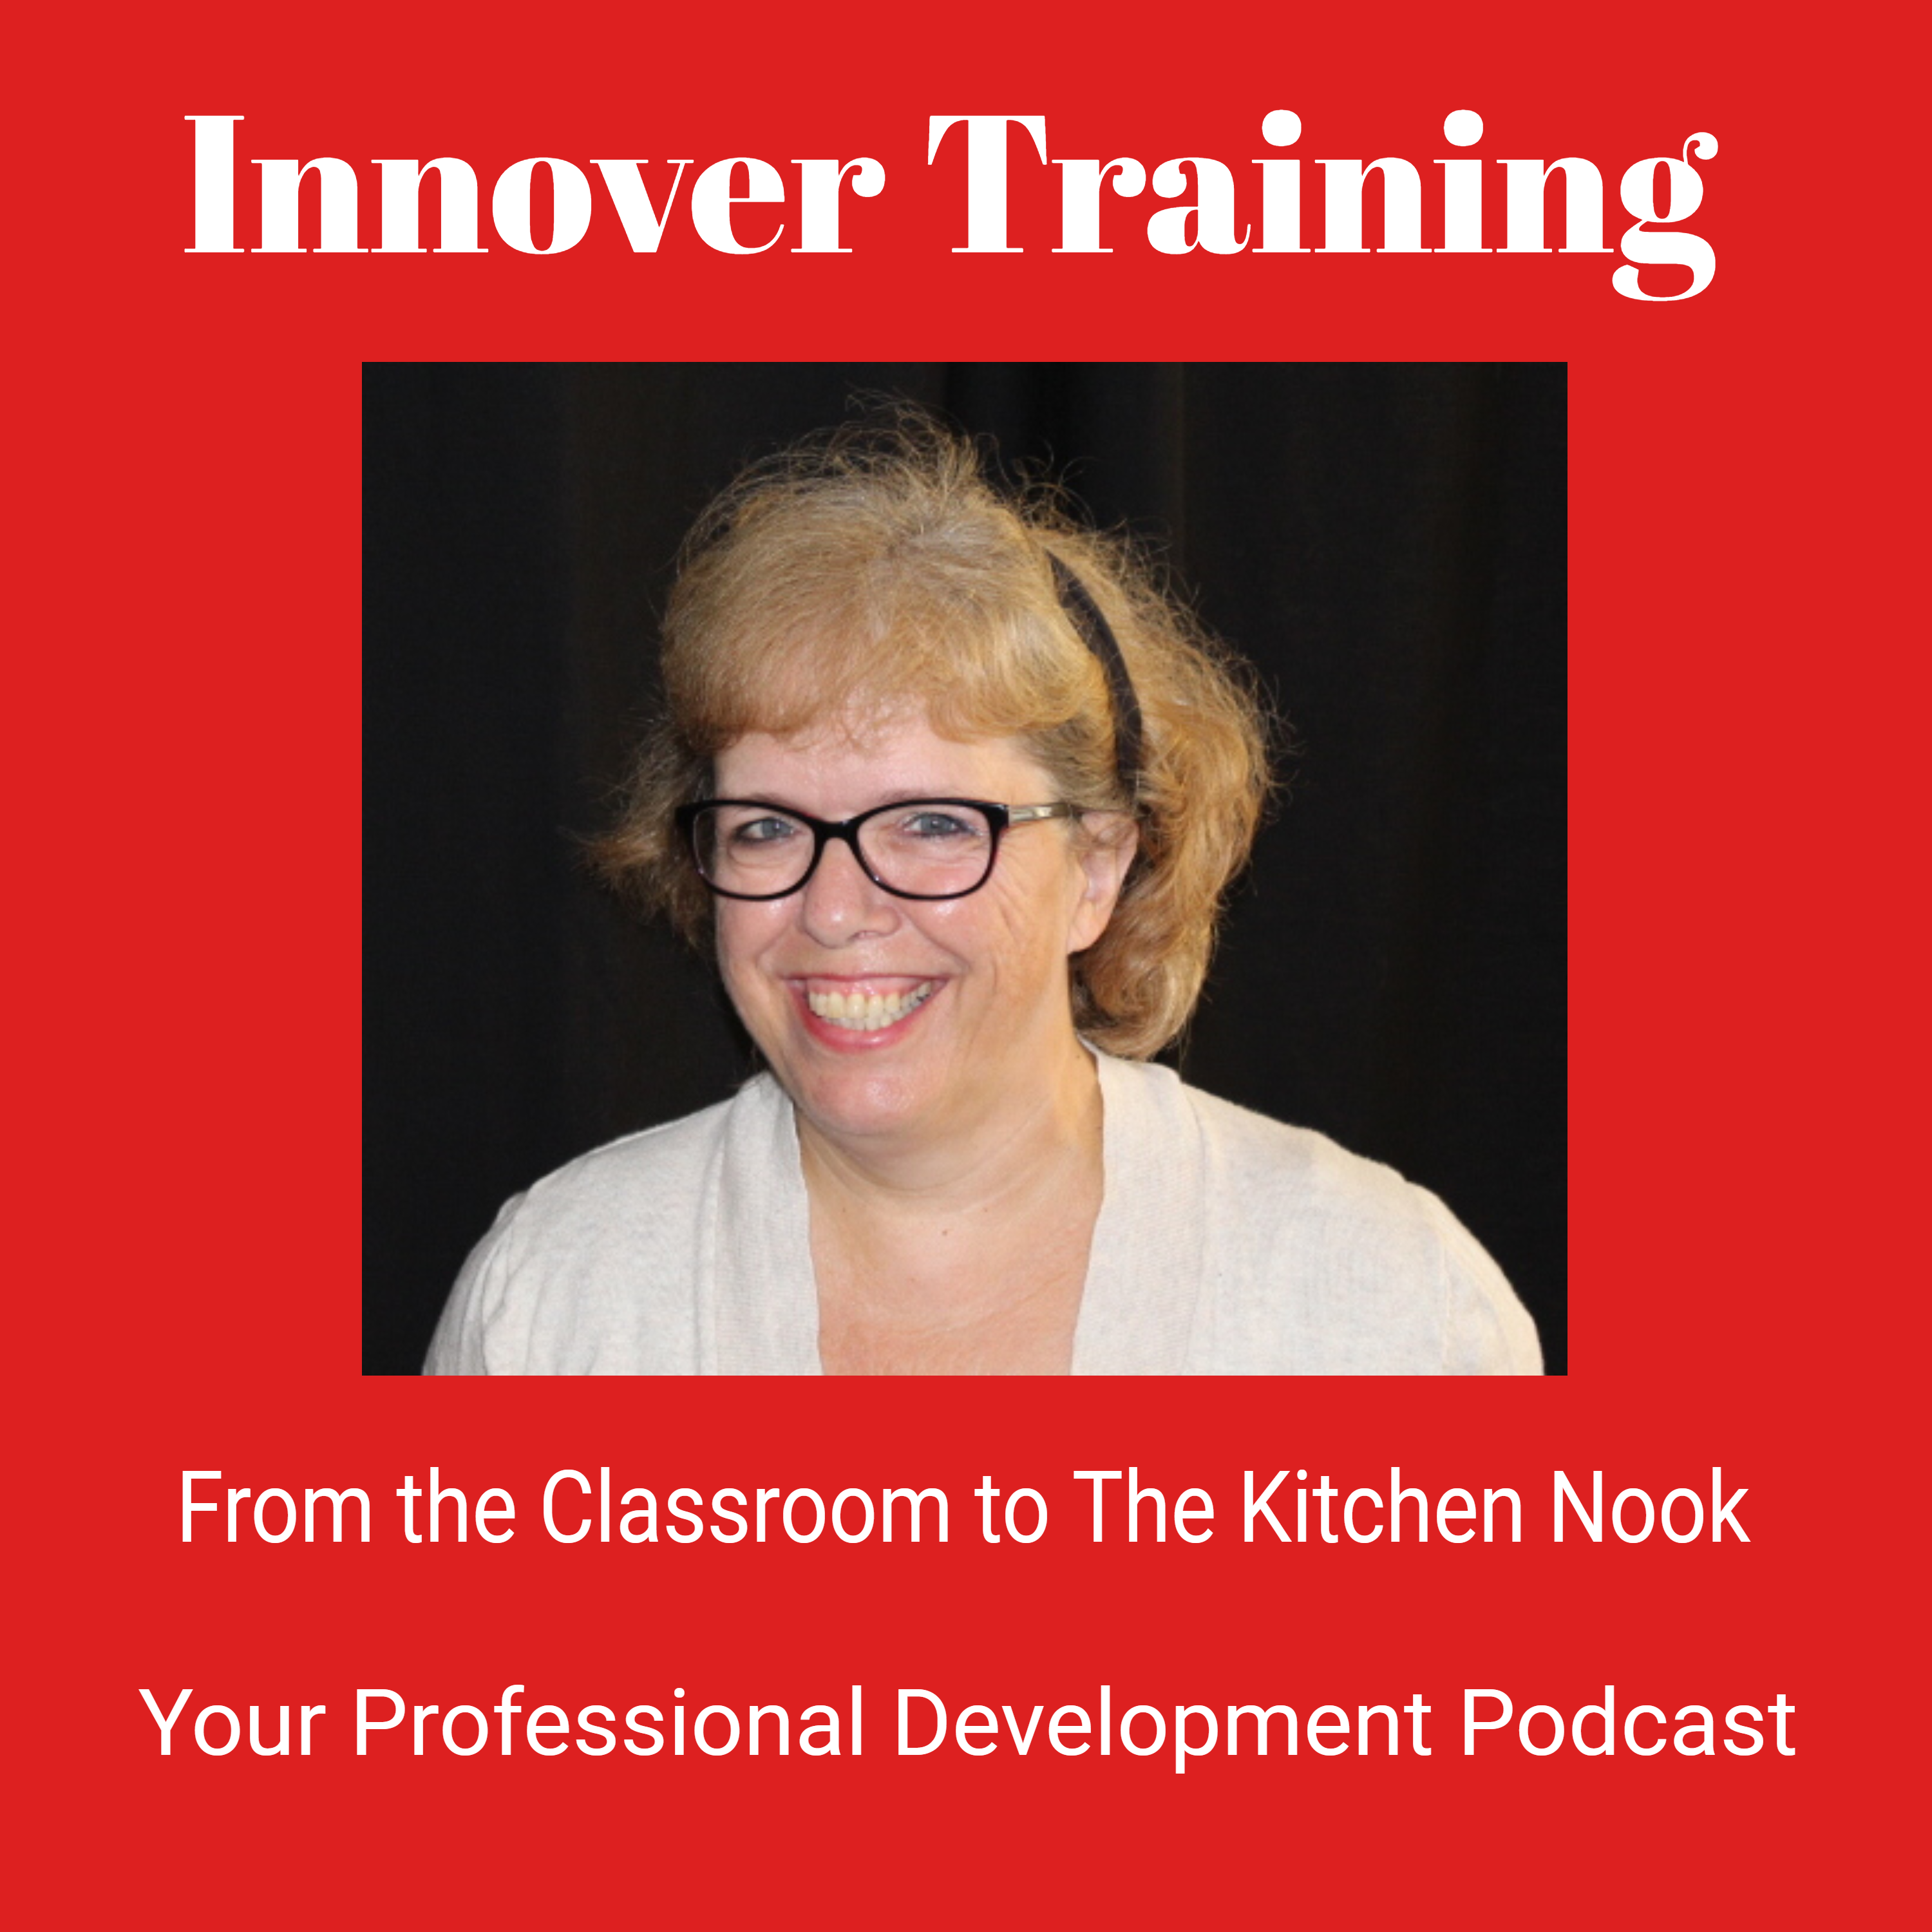 From The Classroom to The Kitchen Nook